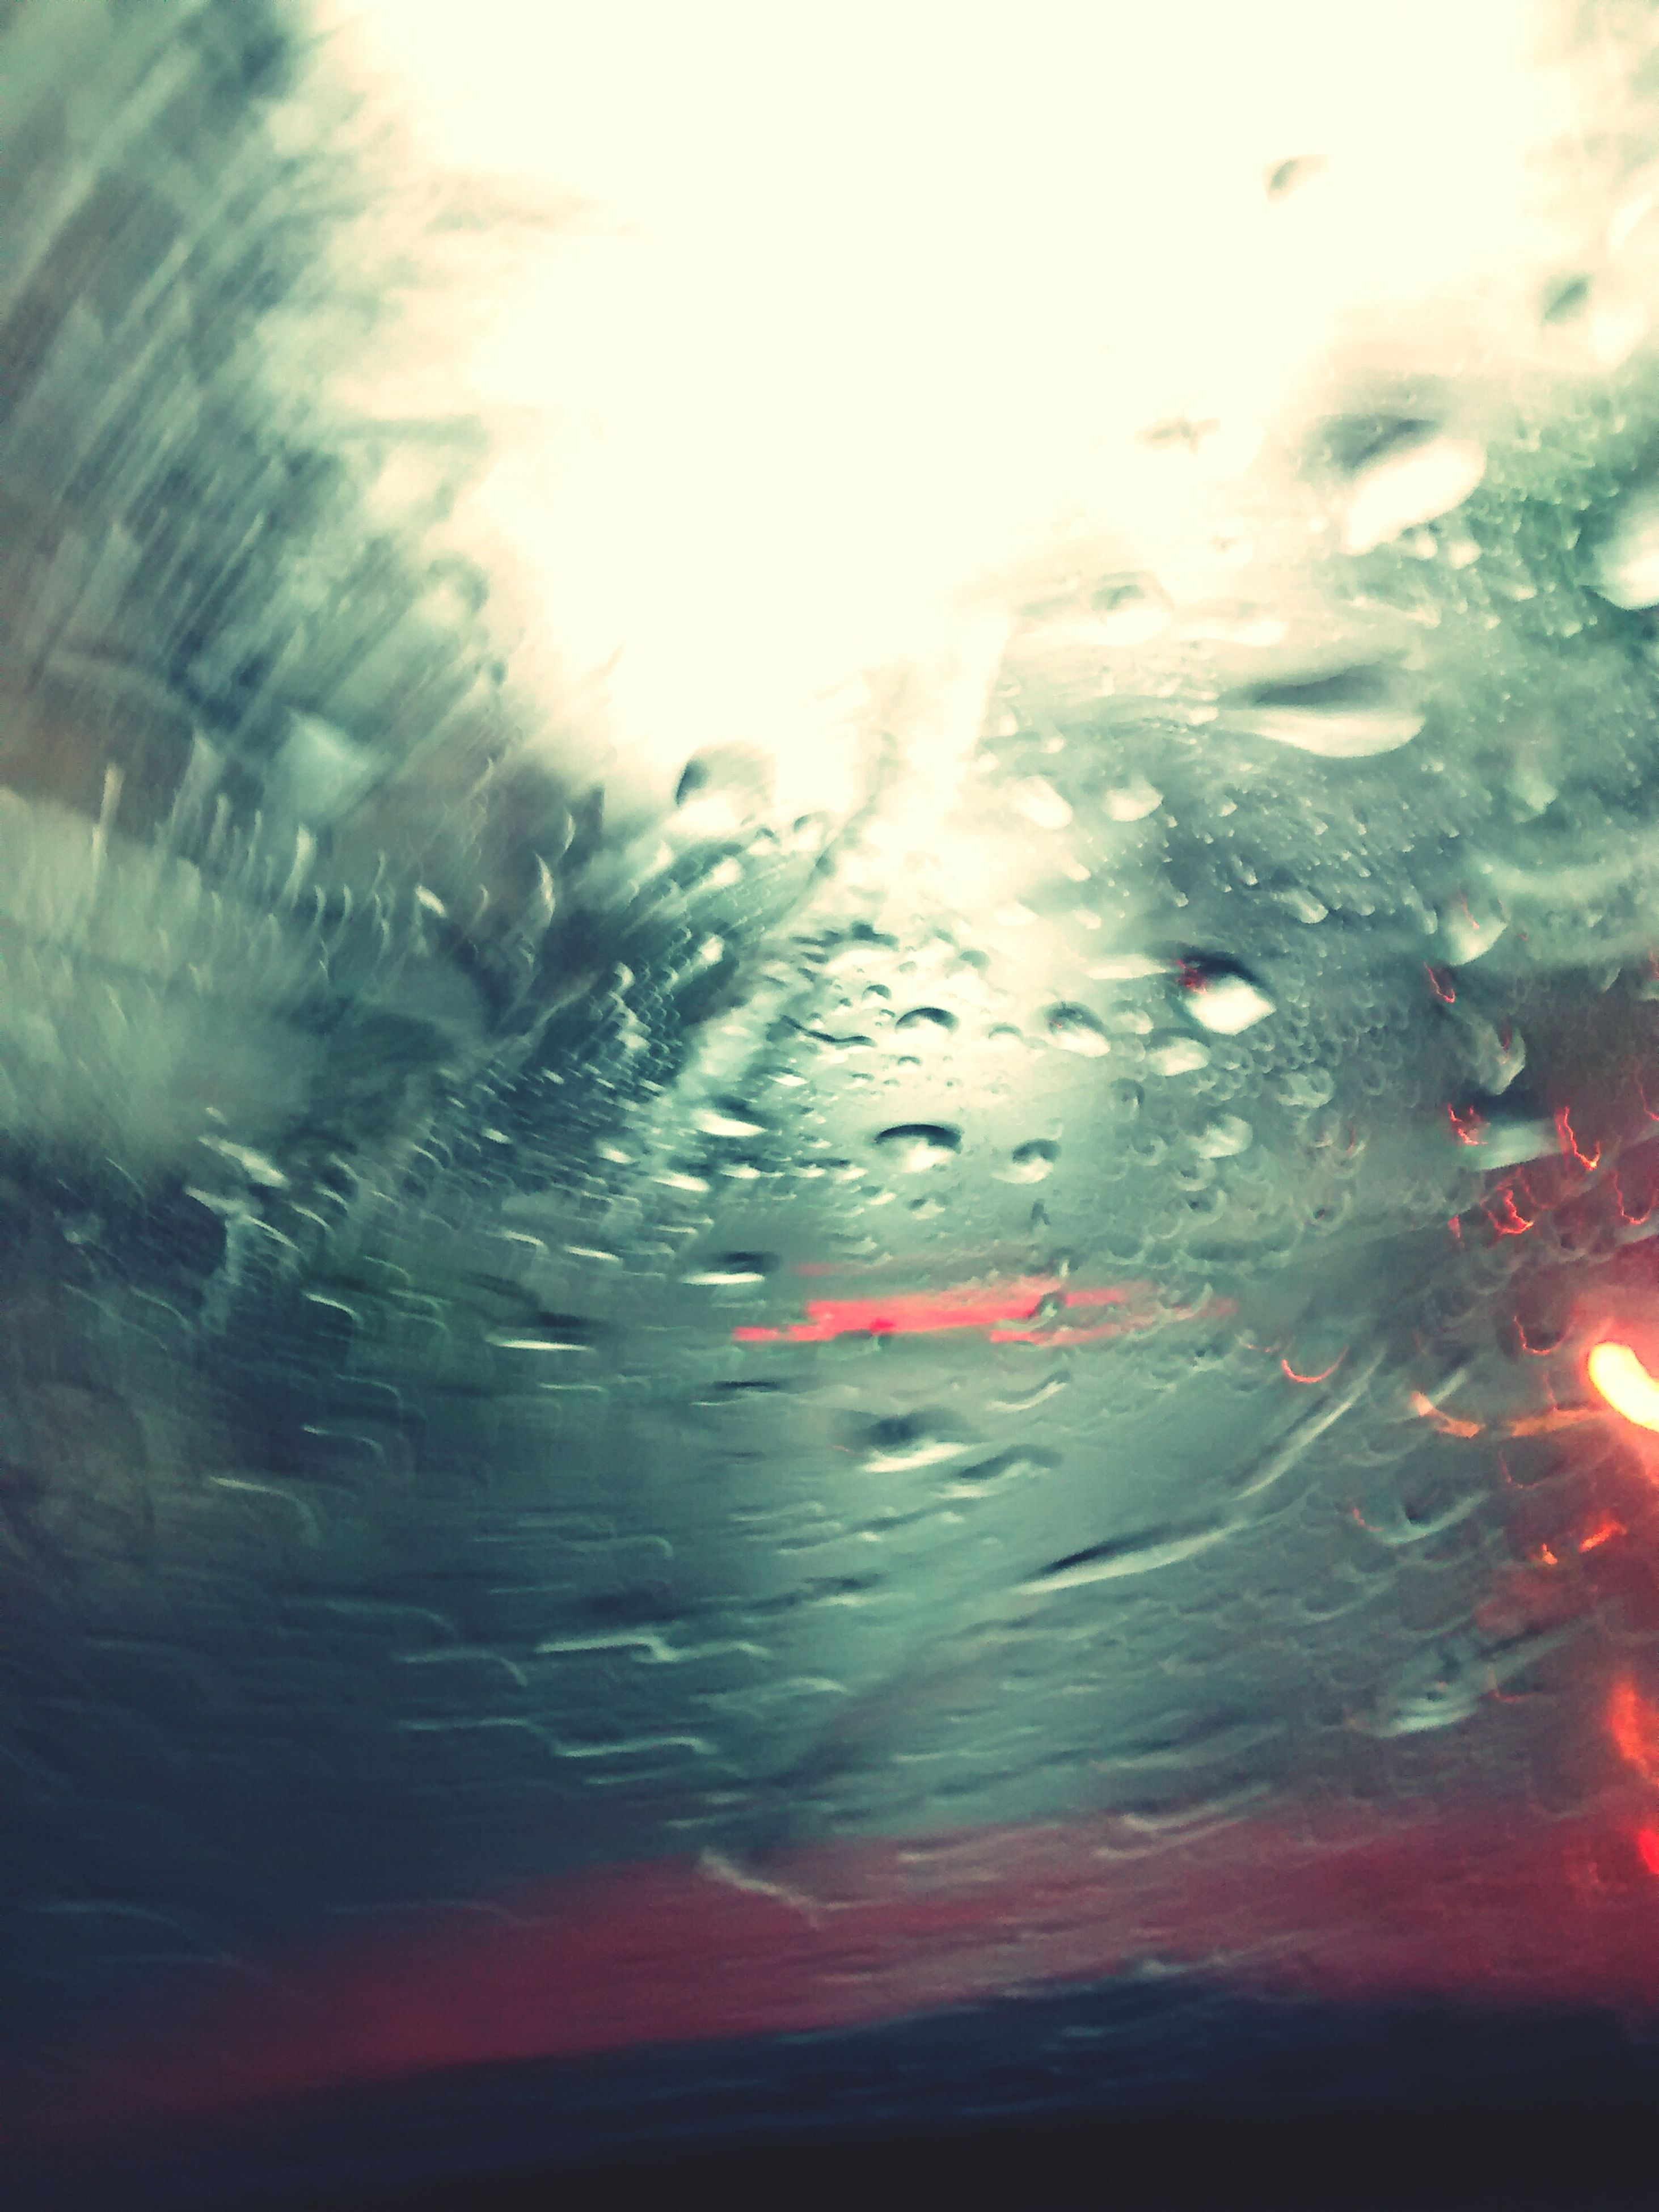 transportation, mode of transport, transparent, car, land vehicle, glass - material, window, water, wet, rain, vehicle interior, drop, on the move, reflection, windshield, sun, motion, lens flare, street, travel